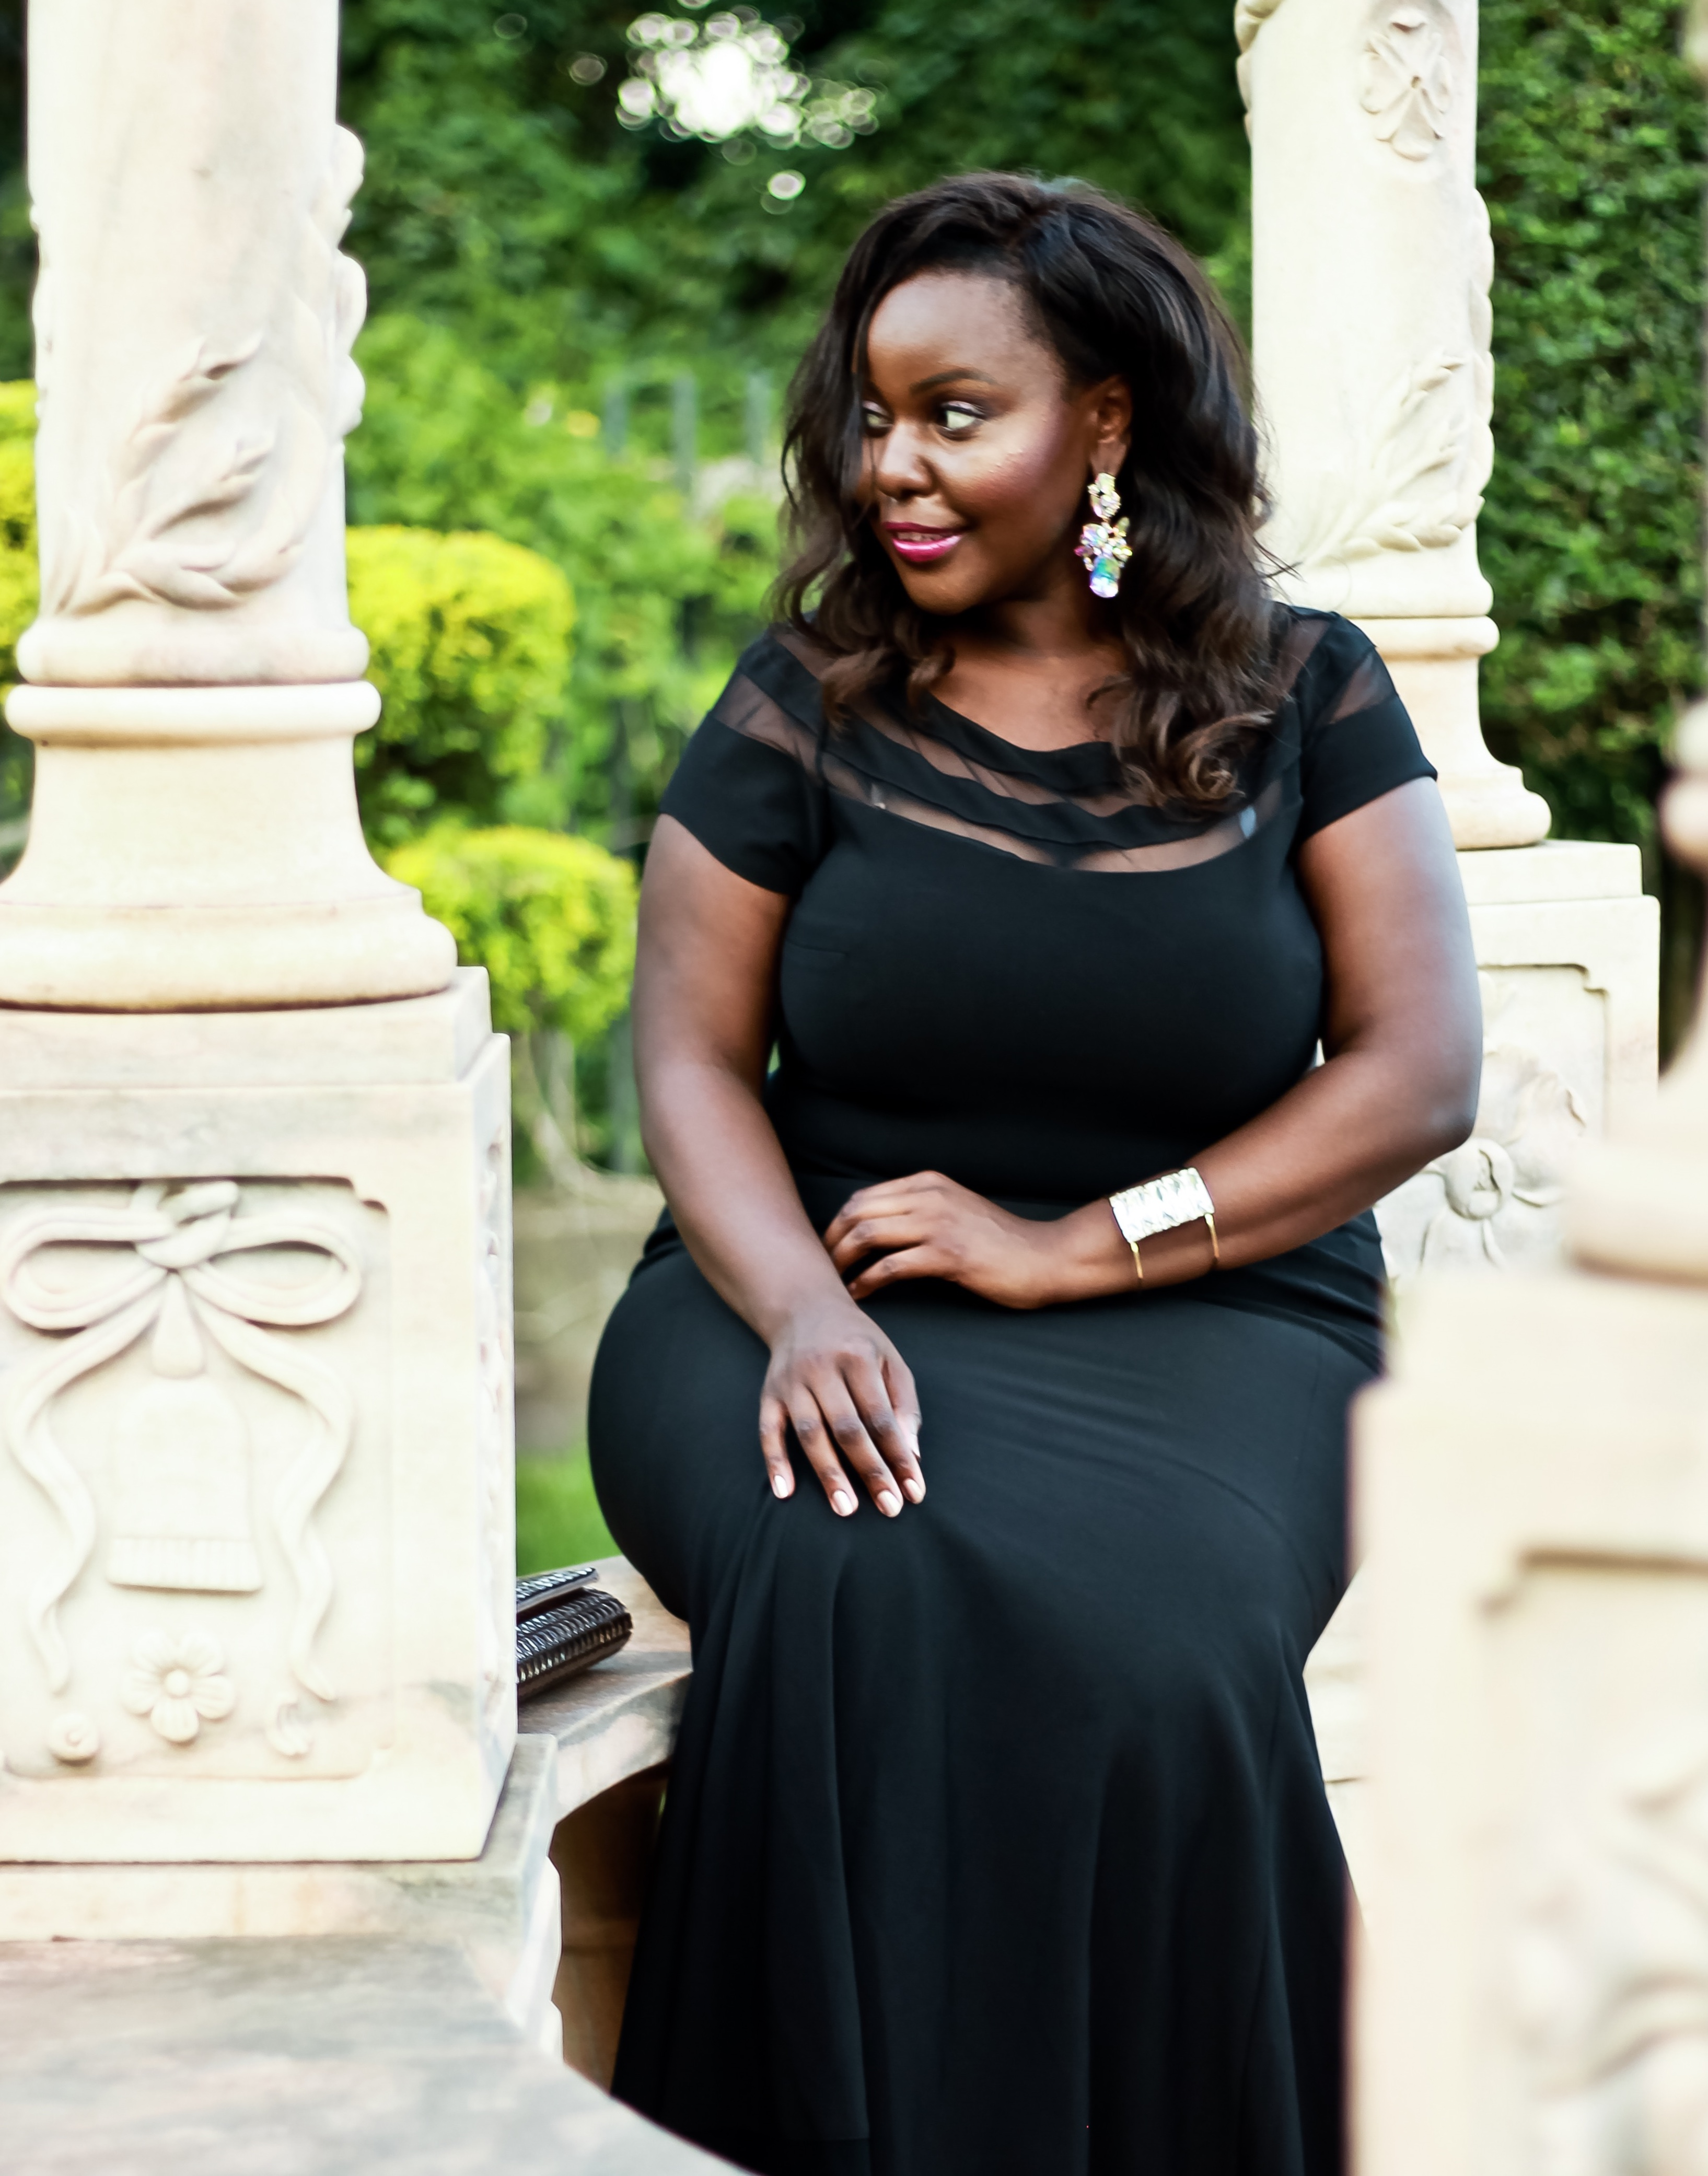 plus size fashion blogs 2017, beautiful curvy girls, how to fill the eye brow of a dark skin, beautiful plus size dark skin girls, plus size black bloggers, clothes for curvy girls, curvy girl fashion clothing, plus blog, plus size fashion tips, plus size women blog, curvy women fashion, plus blog, curvy girl fashion blog, style plus curves, plus size fashion instagram, curvy girl blog, bbw blog, plus size street fashion, plus size beauty blog, plus size fashion ideas, curvy girl summer outfits, plus size fashion magazine, plus fashion bloggers, zara